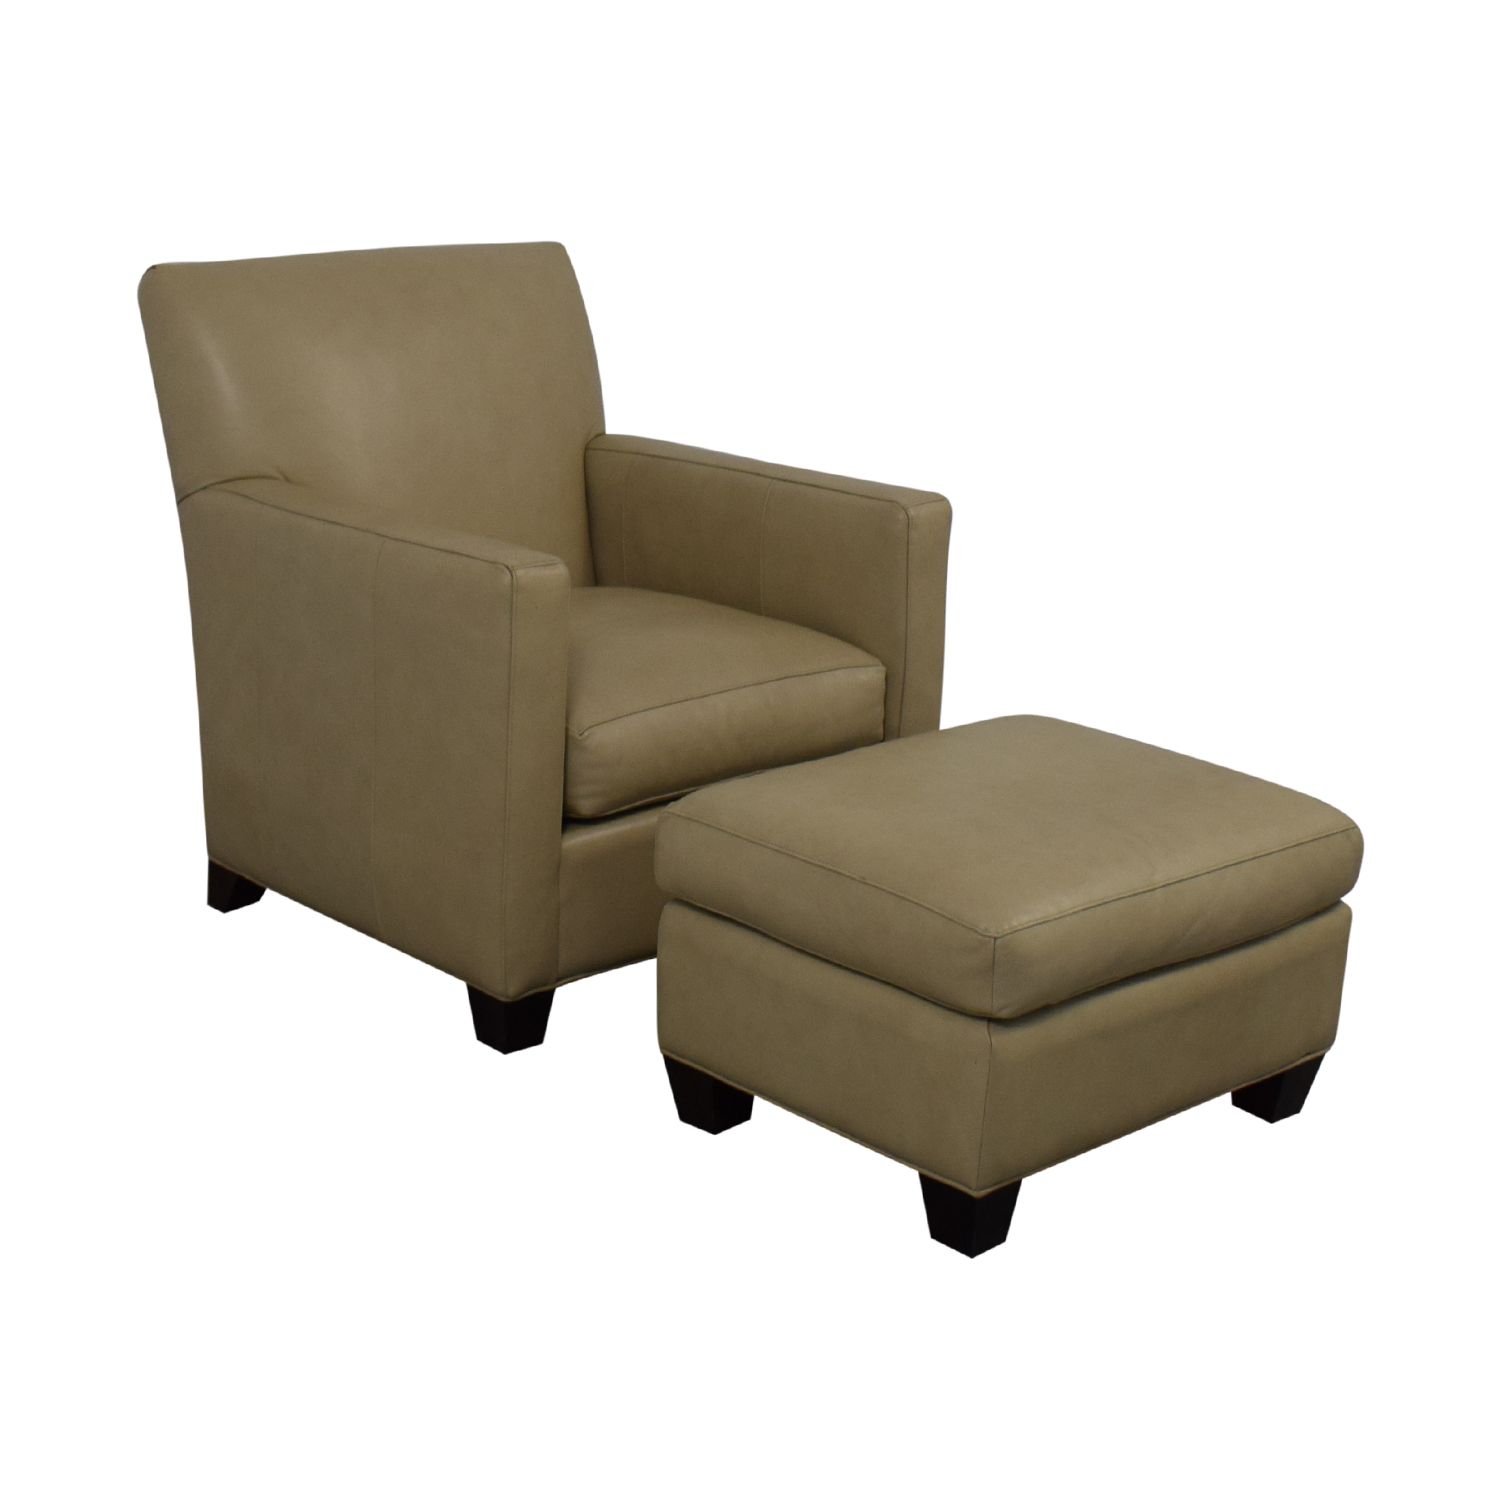 Crate & Barrel Crate & Barrel Accent Chair With Ottoman for sale